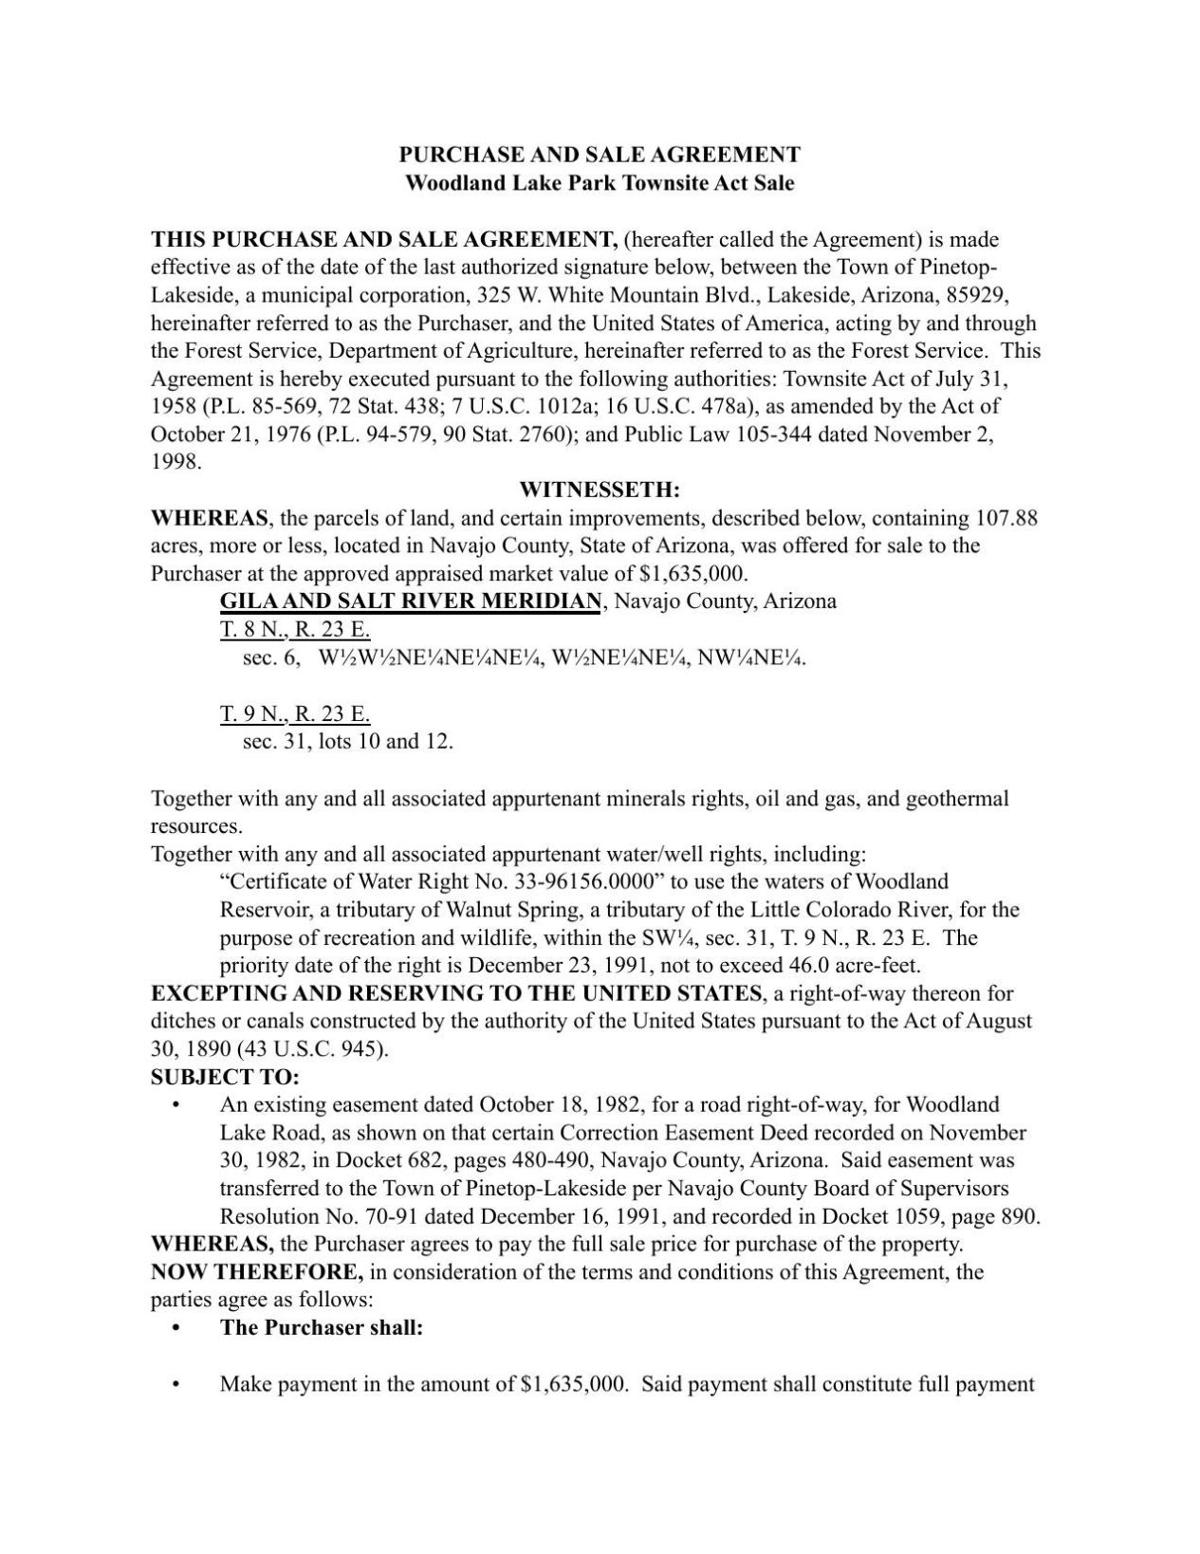 Woodland Lake Park Purchase and Sale Agreement